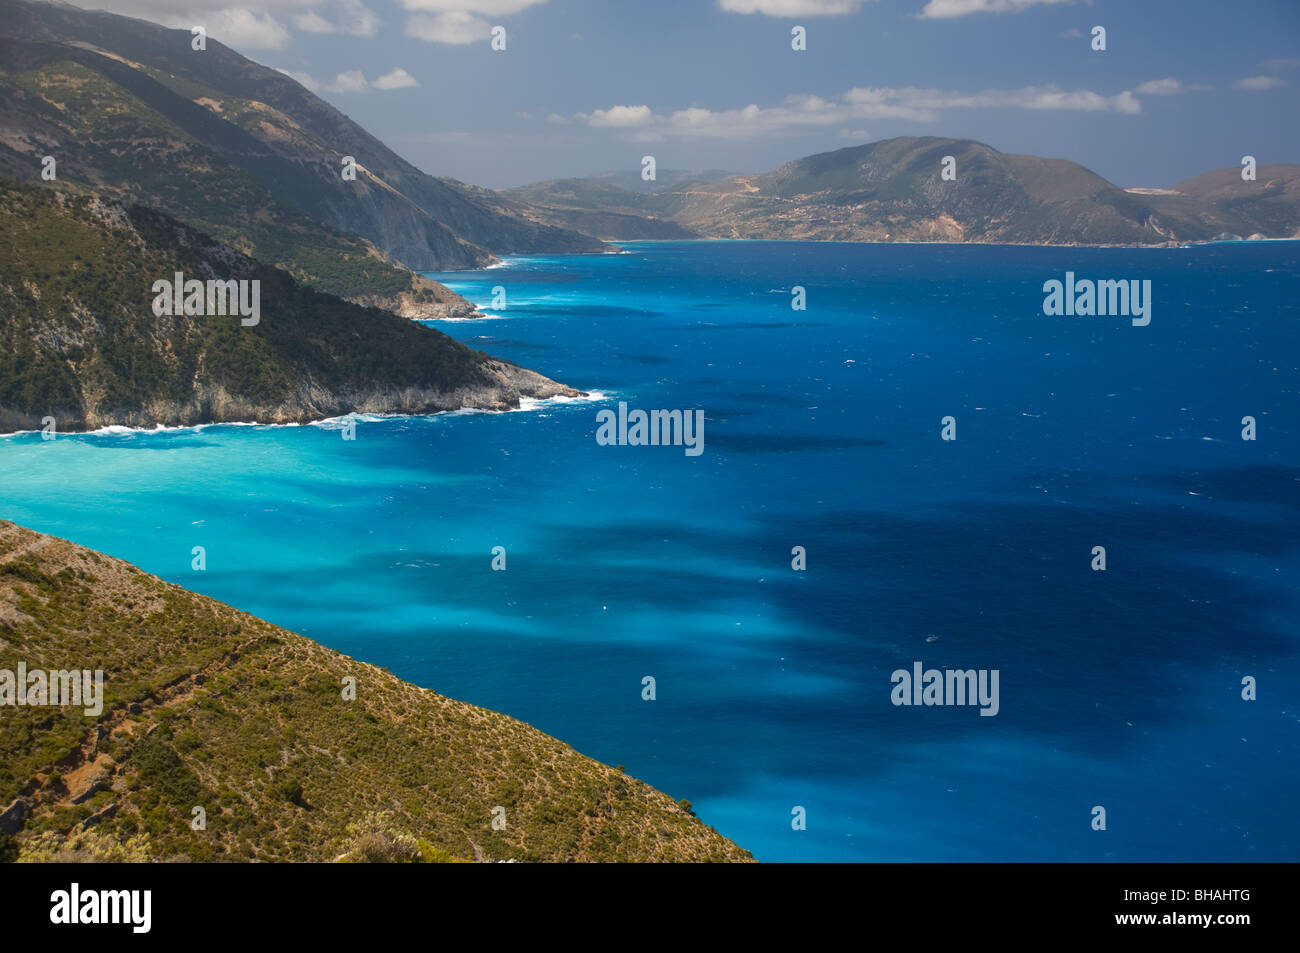 A view of the sea and coast from the island of Ithaca, The Ionian Islands, Greece - Stock Image